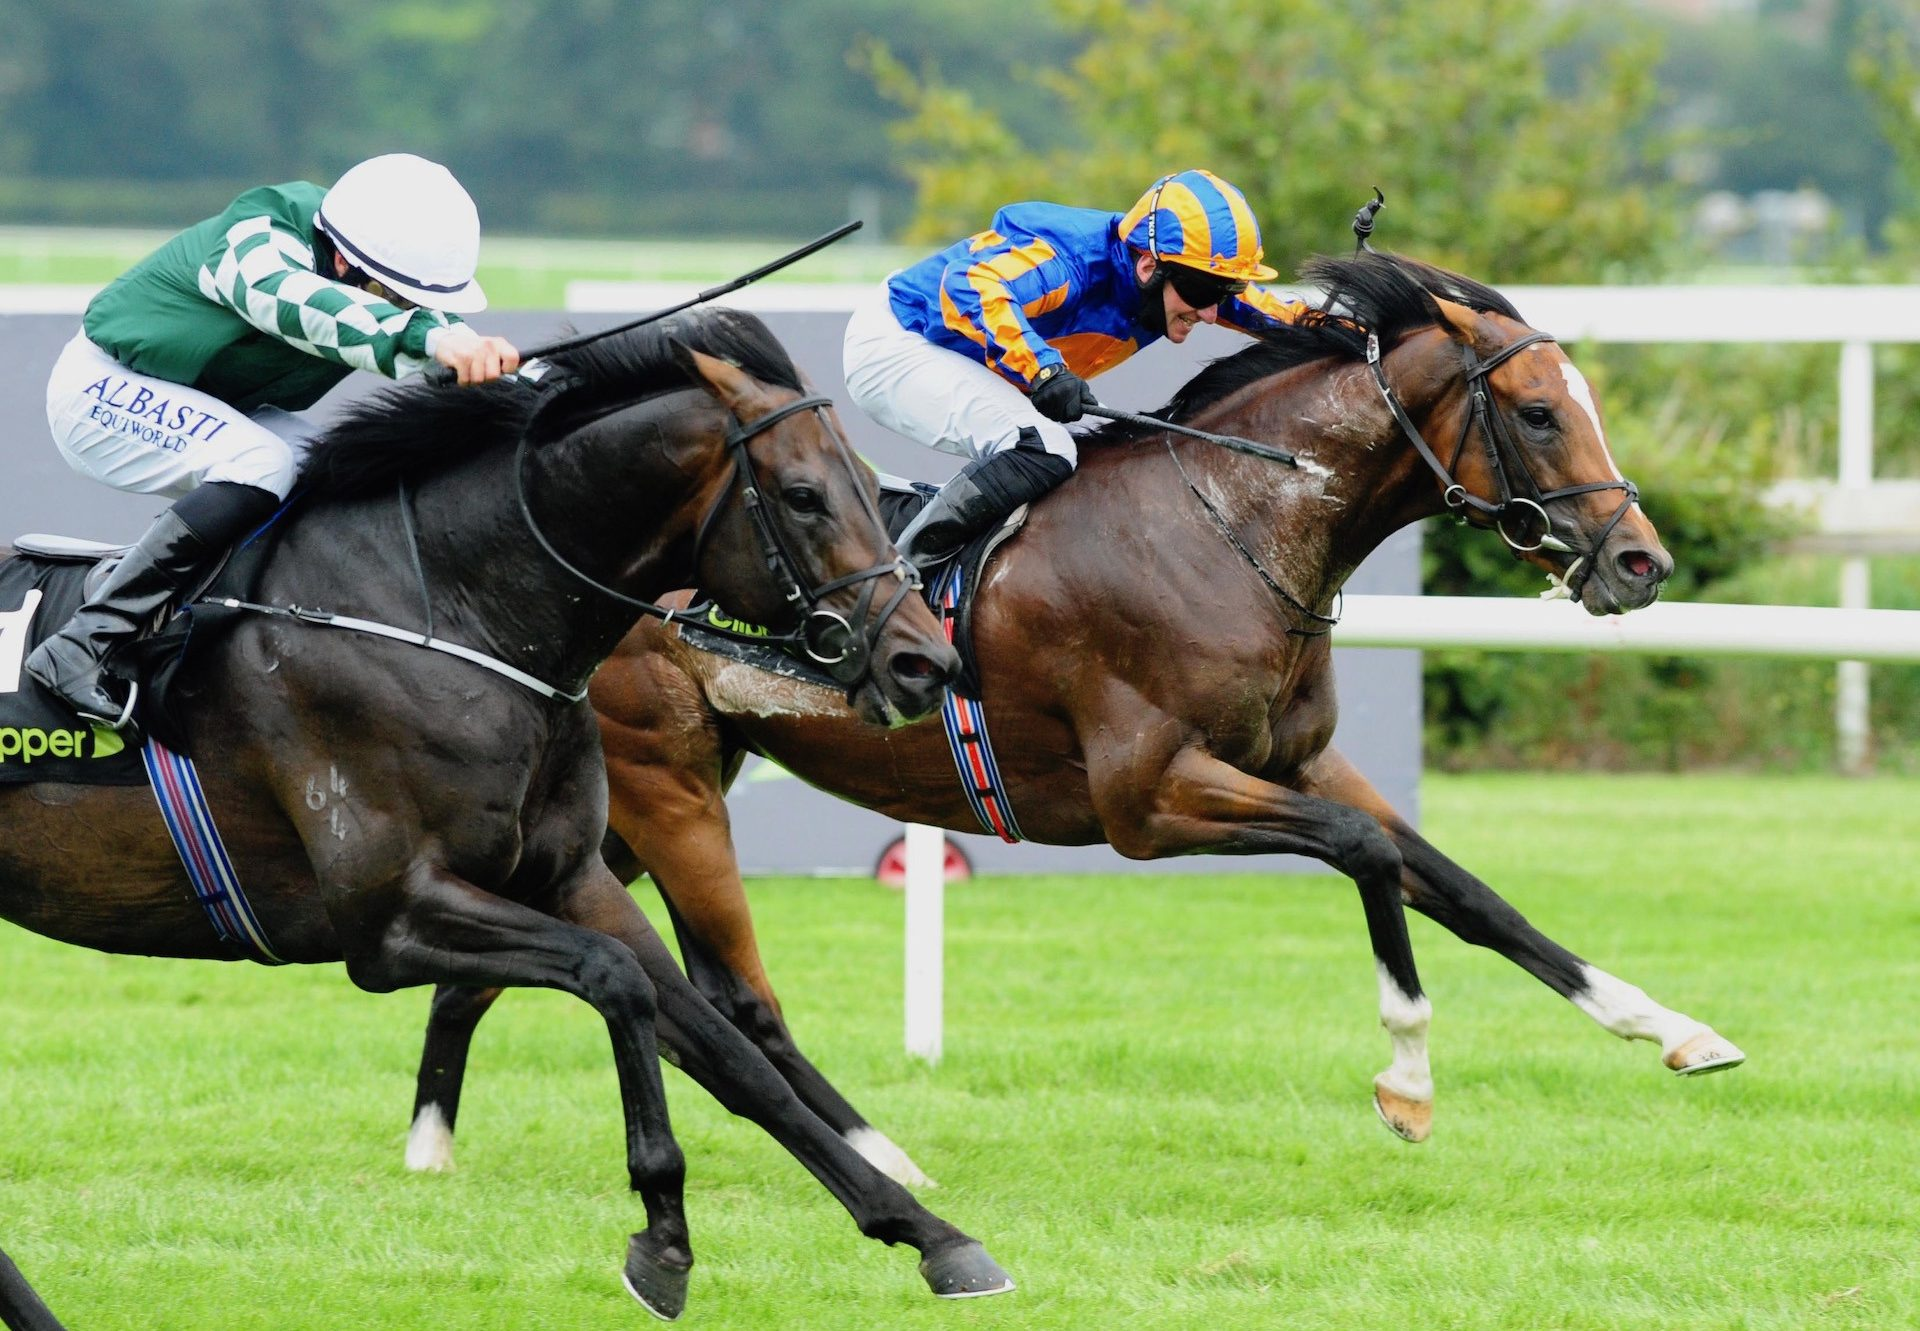 Royal Dornoch (Gleneagles) Wins The Gr.3 Desmond Stakes at Leopardstown